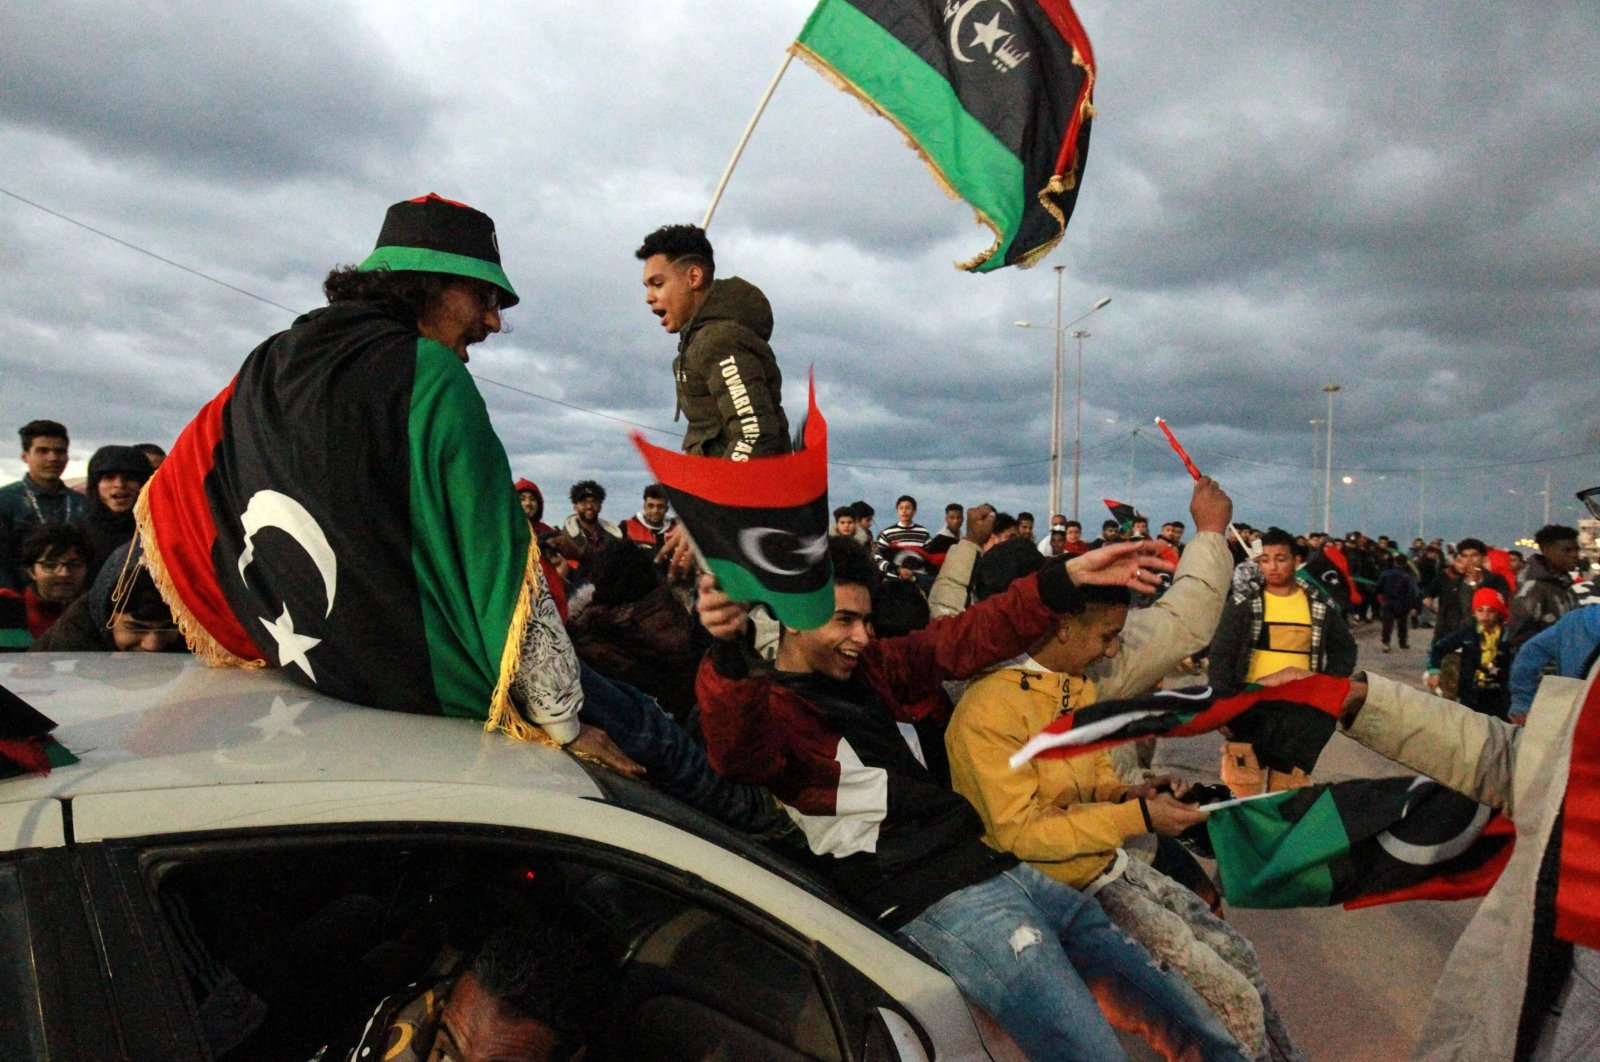 Libyans wave national flags as they gather to mark the 10th anniversary of the 2011 revolution, in the eastern city of Benghazi, Libya, Feb. 17, 2021. (AFP Photo)